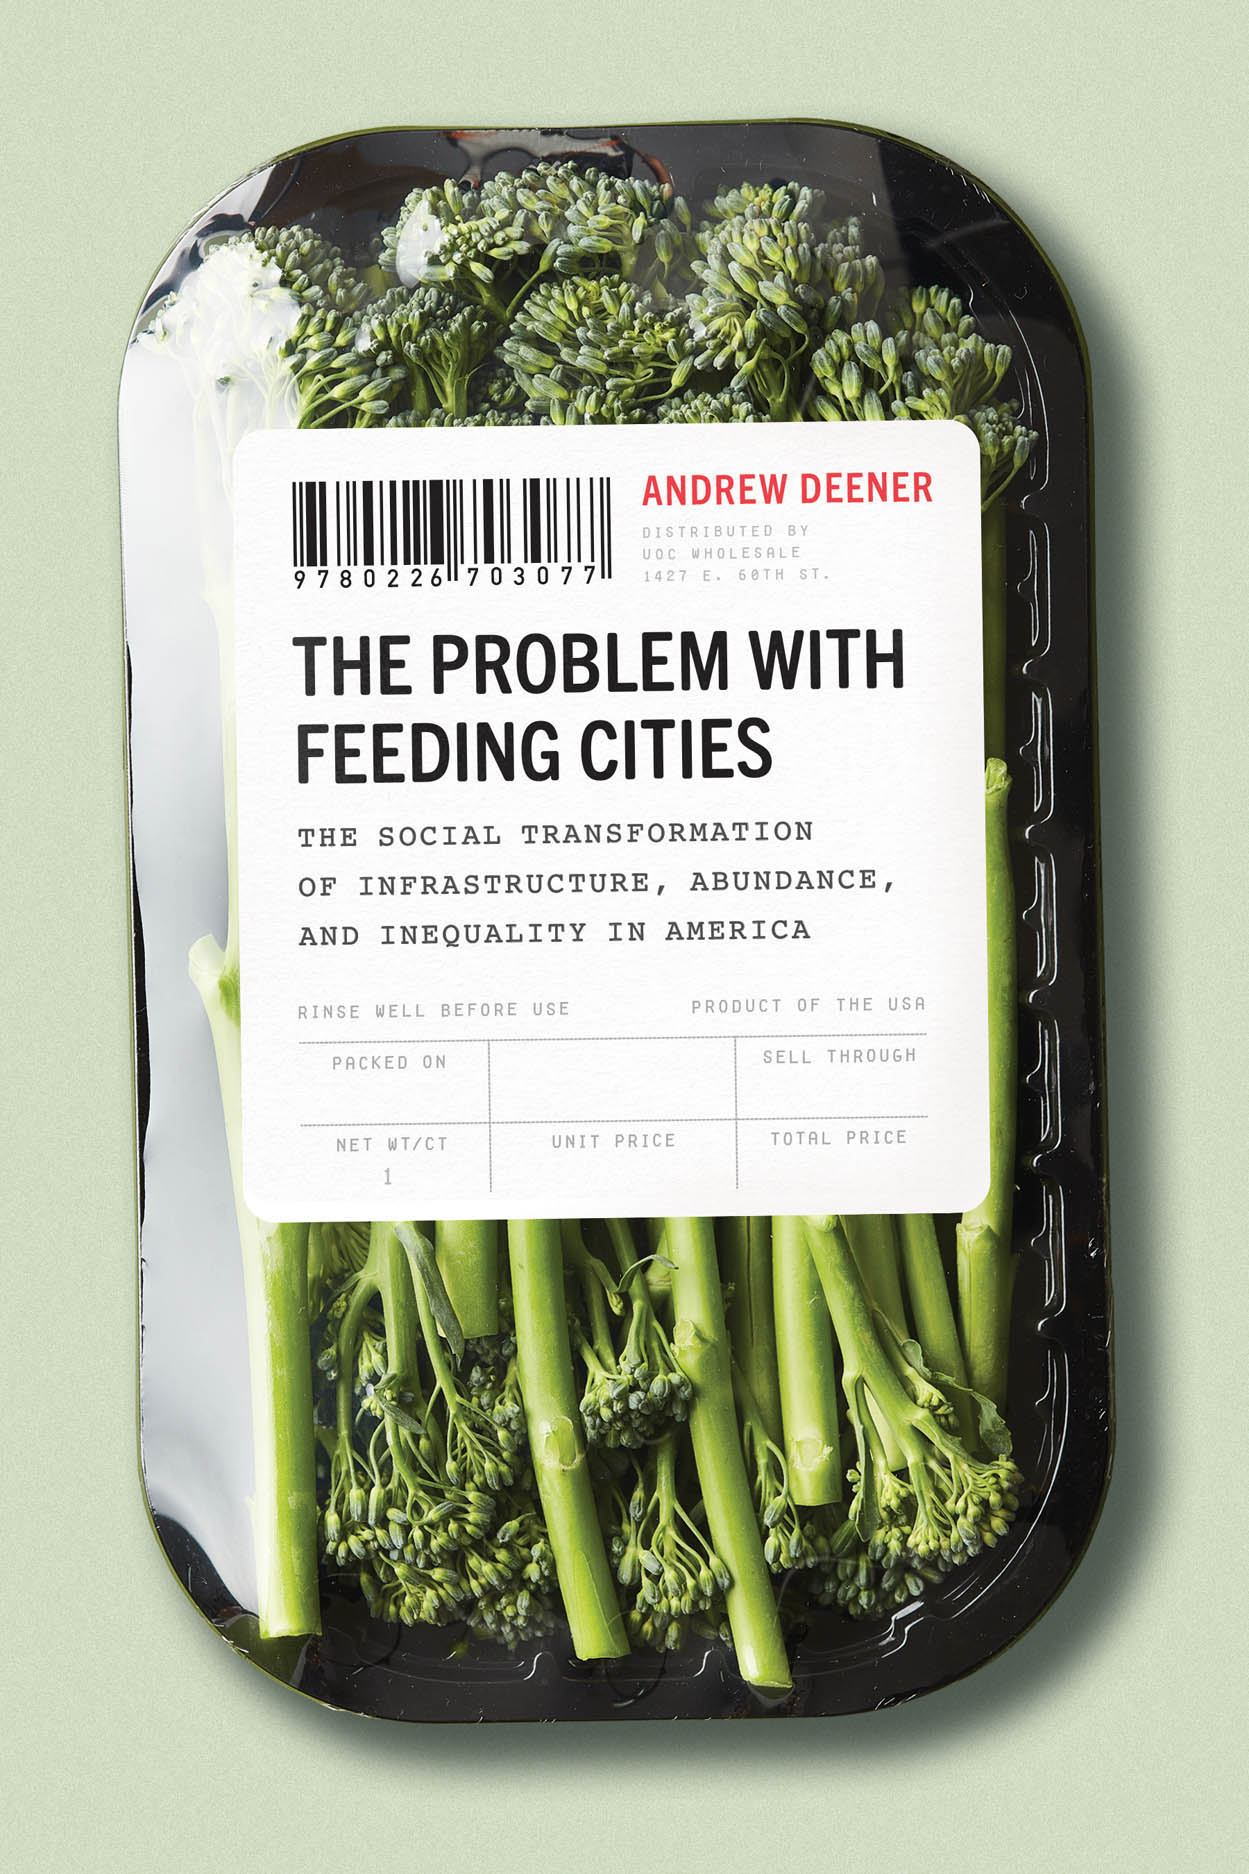 The Problem with Feeding Cities